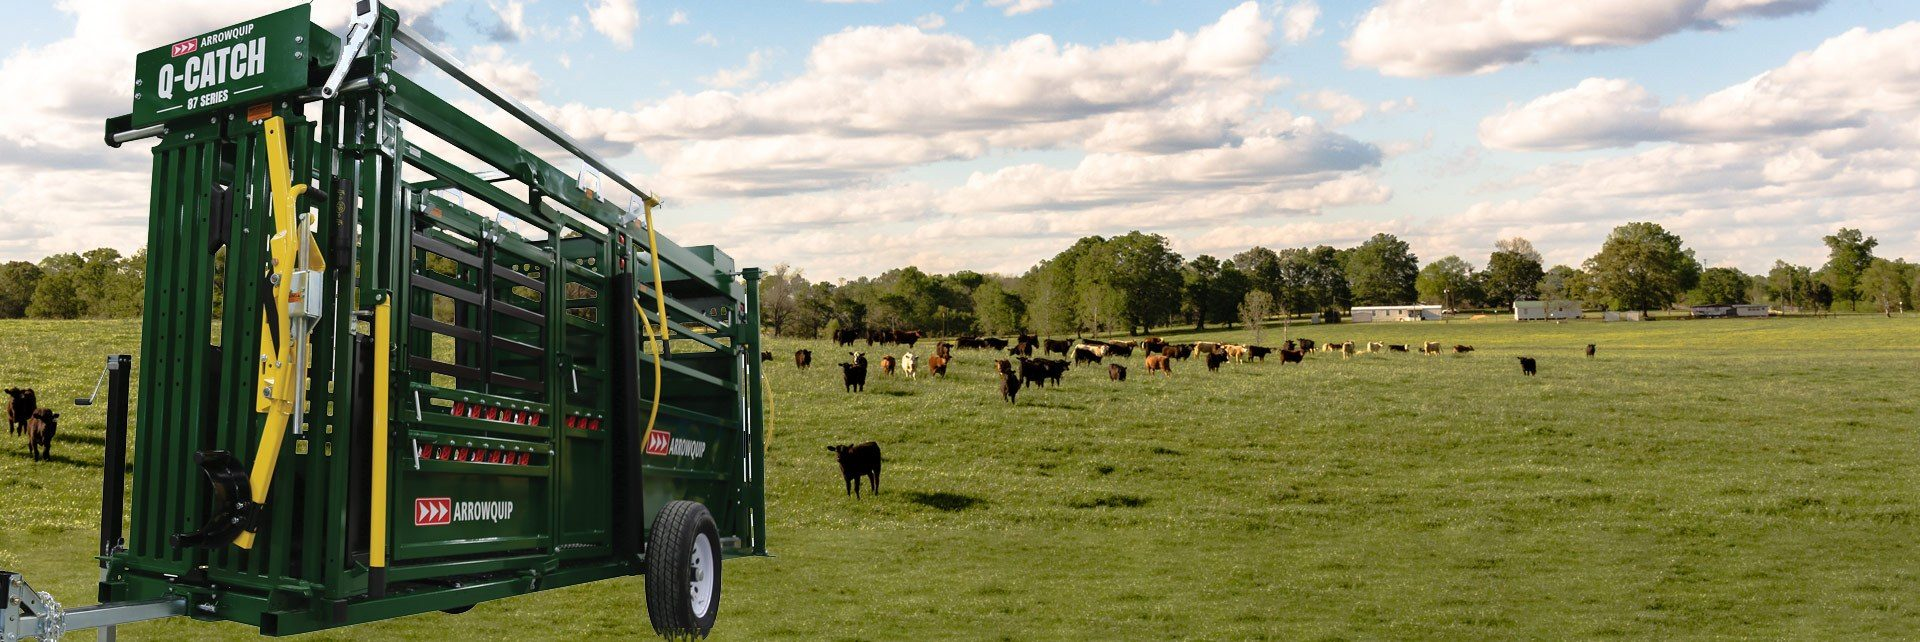 Arrowquip's portable cattle chute and alley in a field with cows